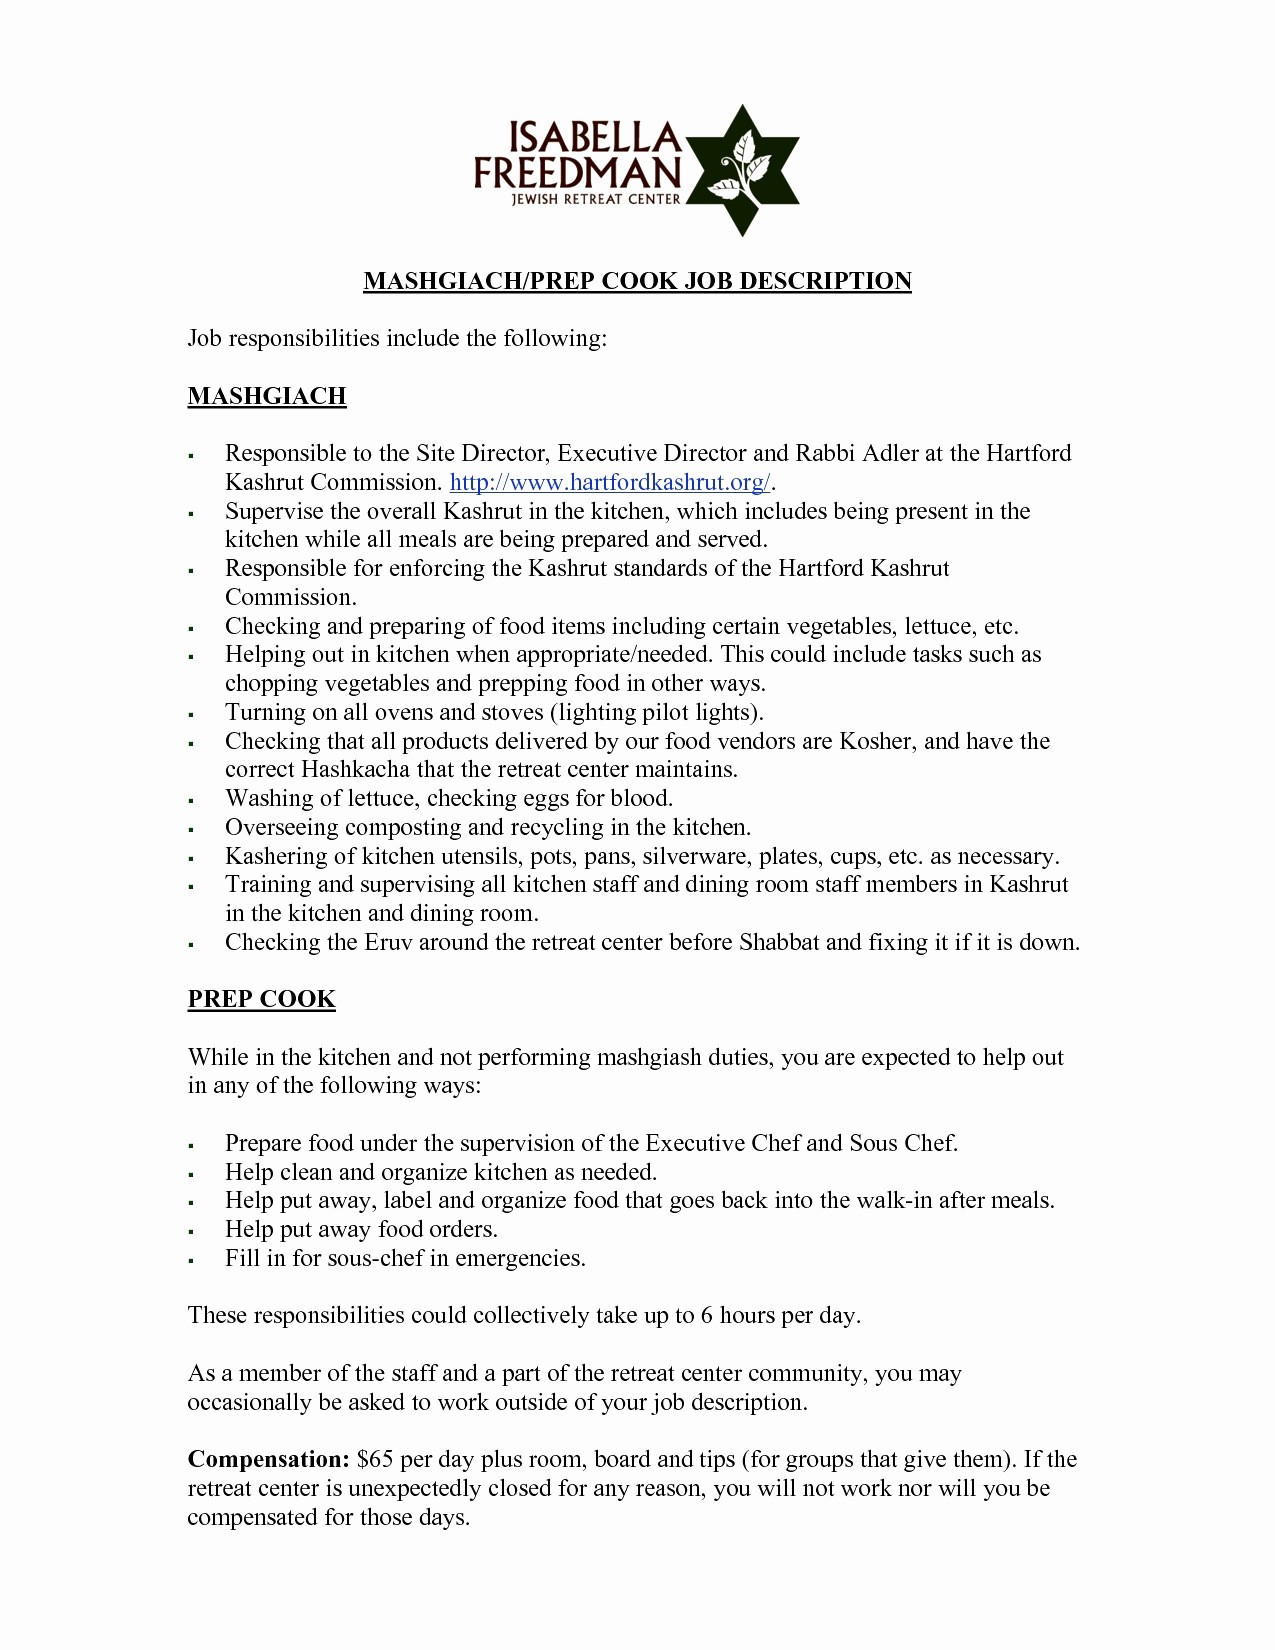 How to Write A Cover Letter Template - Cover Letter Job Sample Fresh Resume Doc Template Luxury Resume and